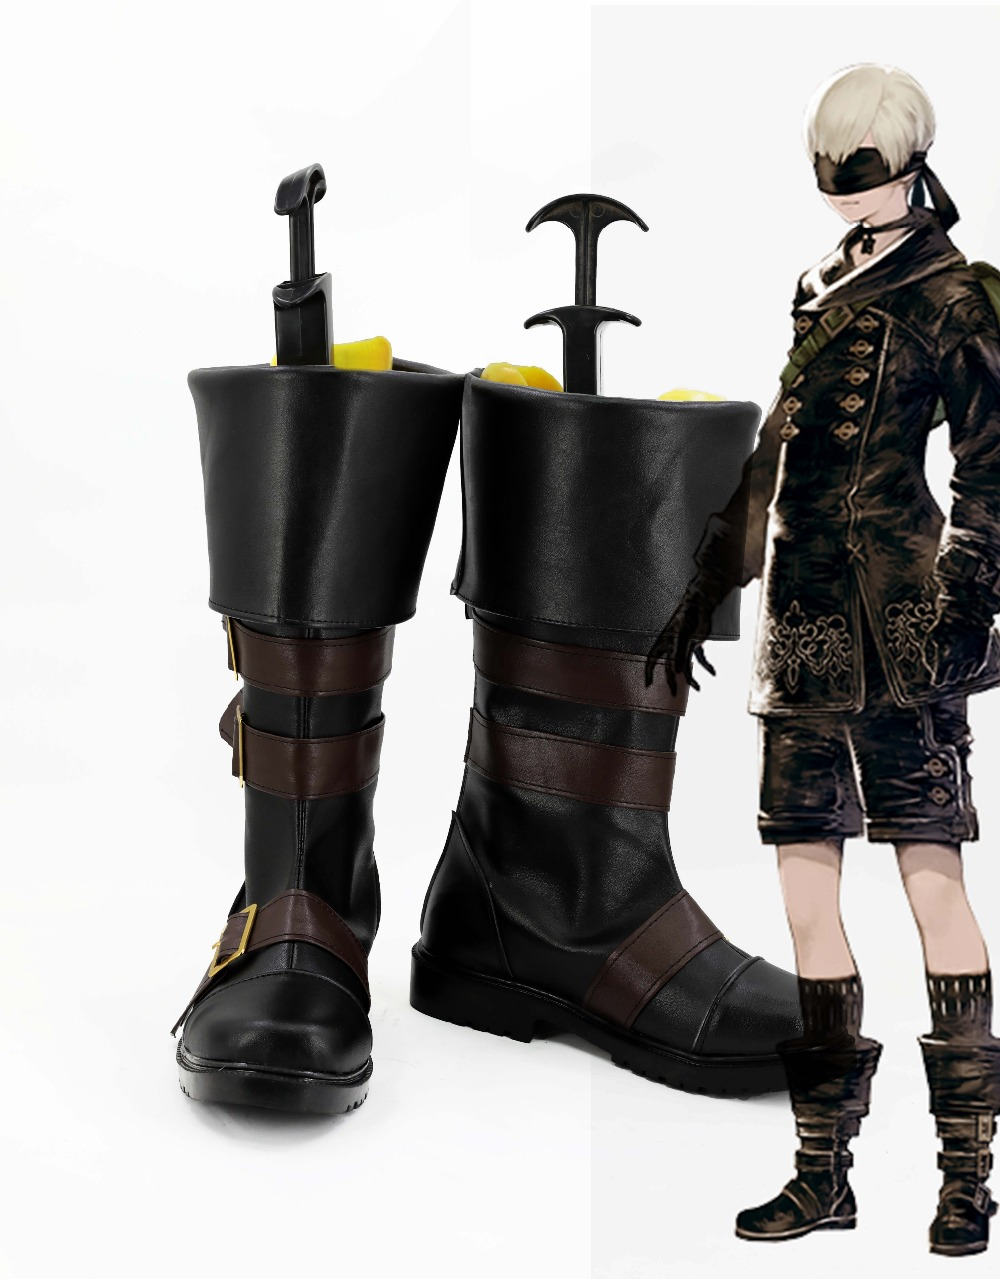 New NieR:Automata Cosplay YoRHa No. 9 Type S Shoes Black Shoes Boots For Adult Costume Custom Made